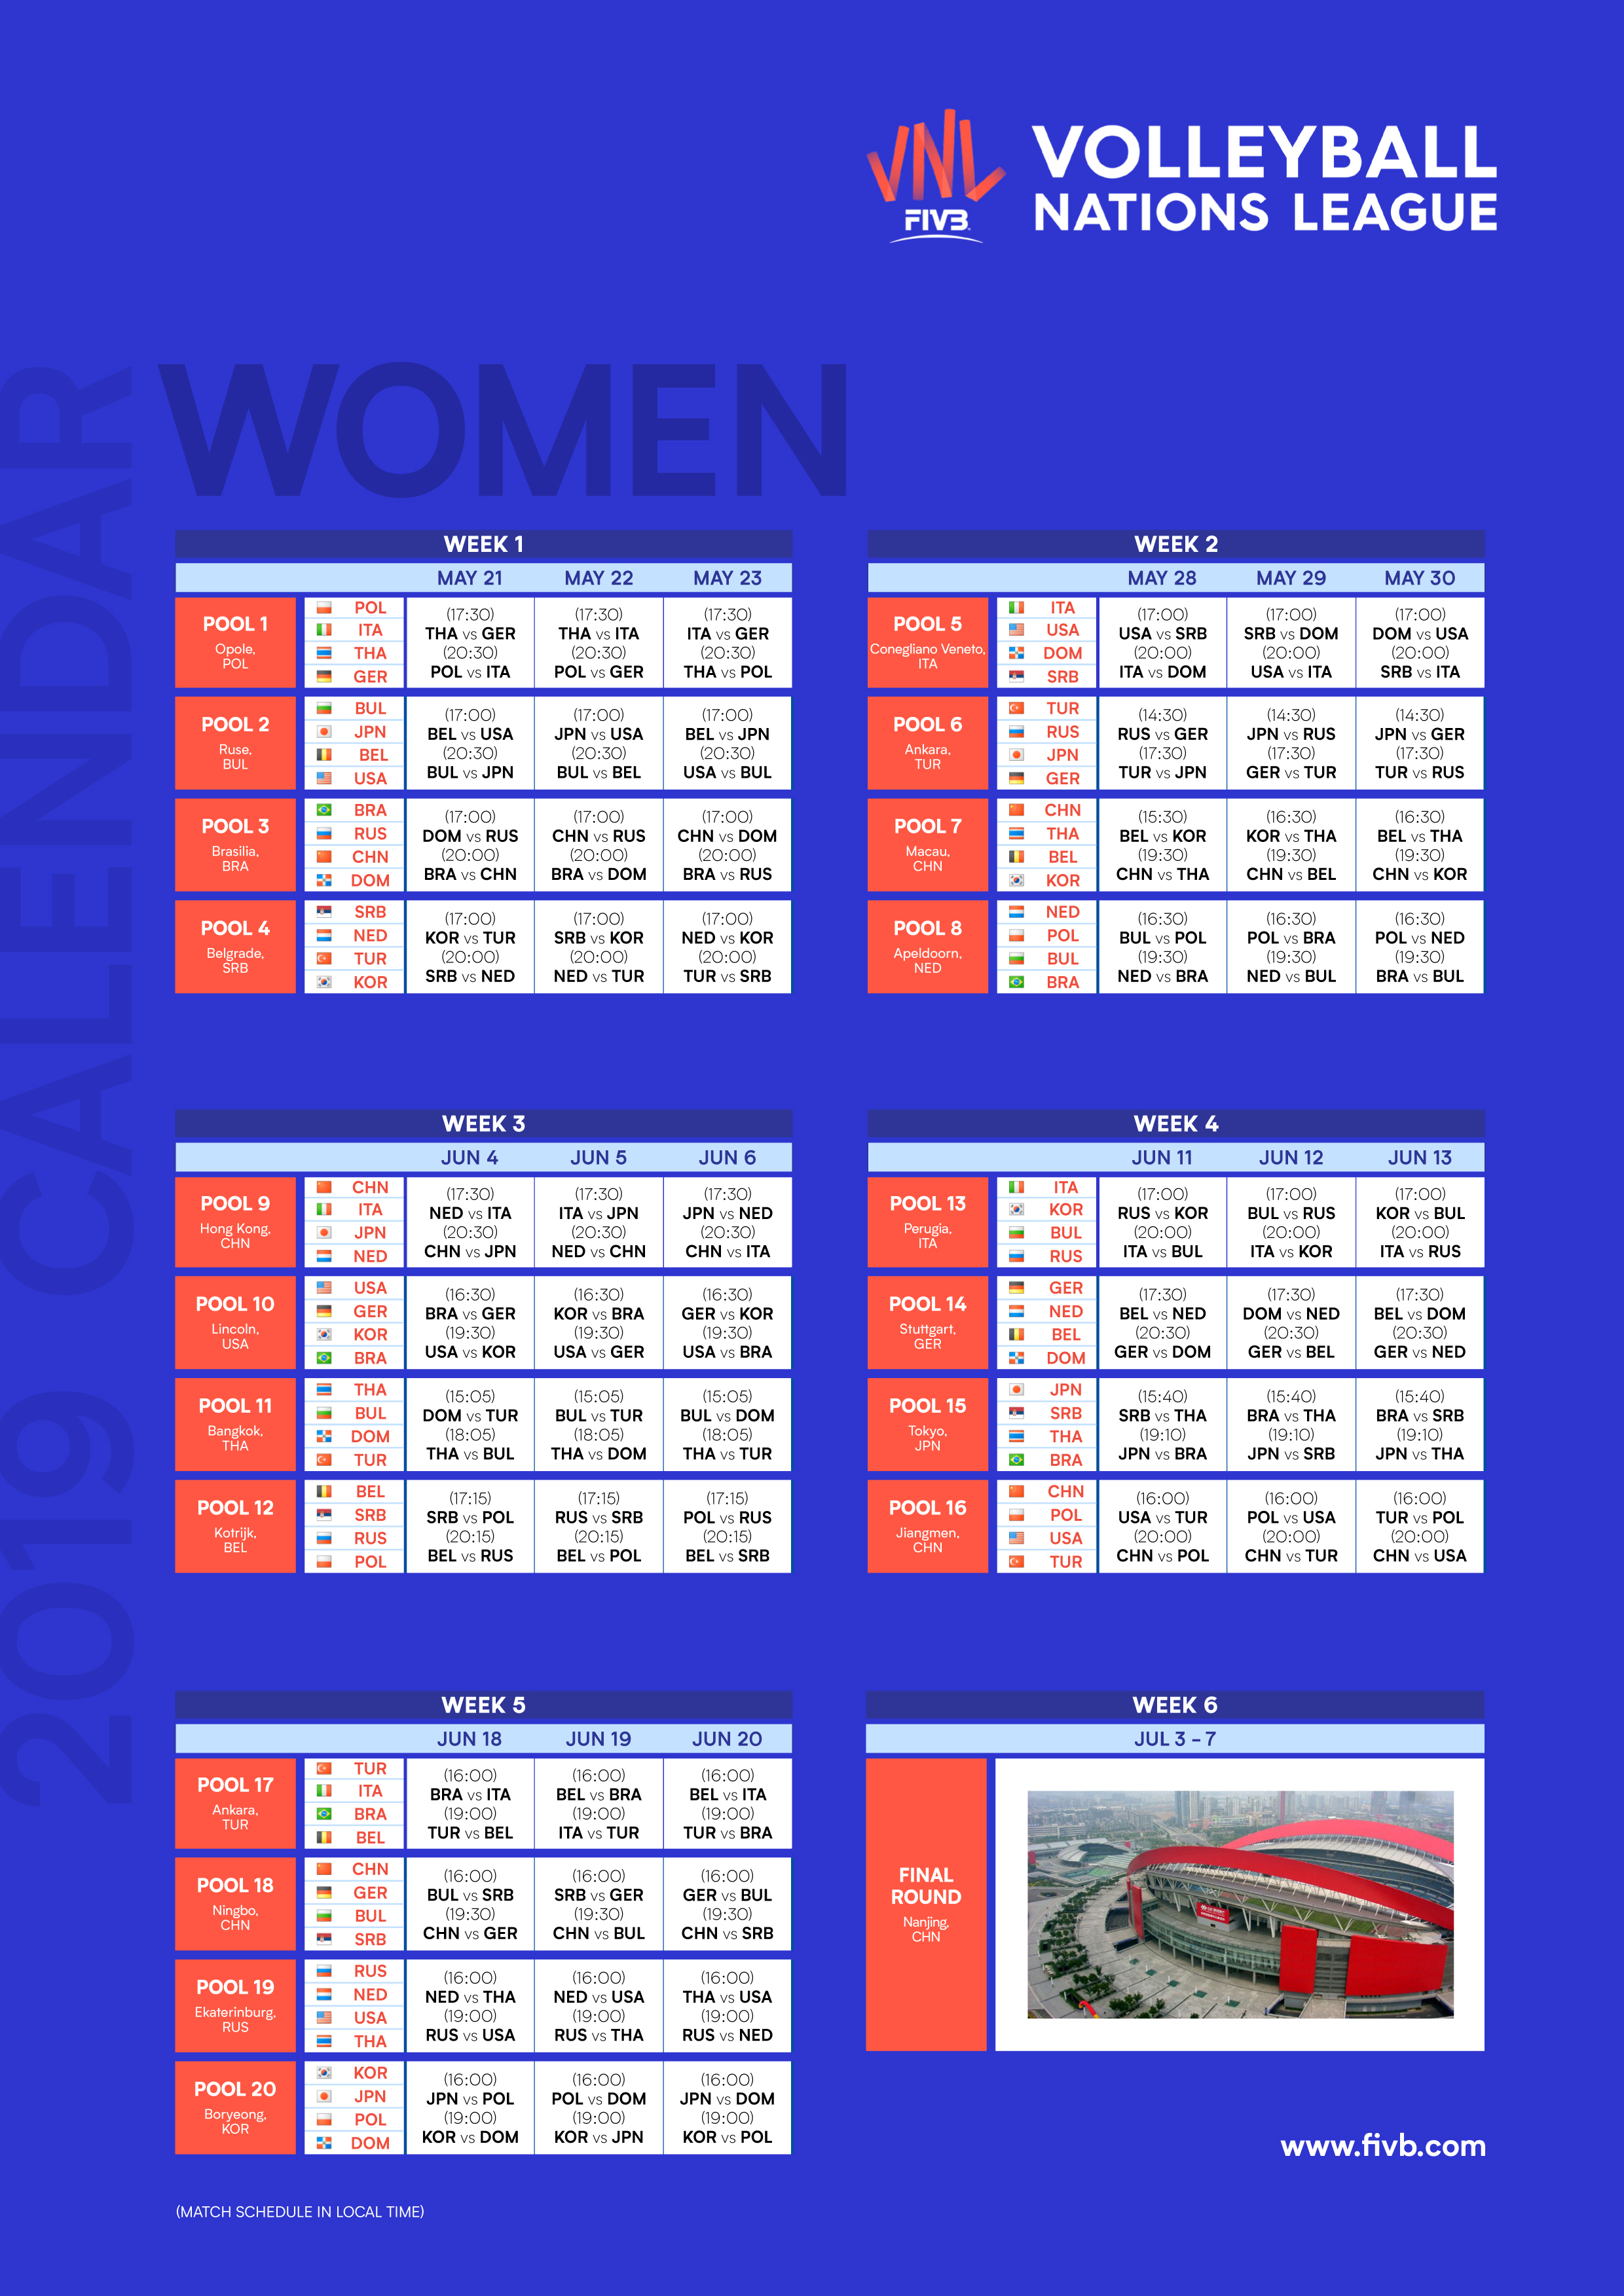 Calendario Final Six Volley.News 2019 Vnl Opens With Bang Schedule Reveals